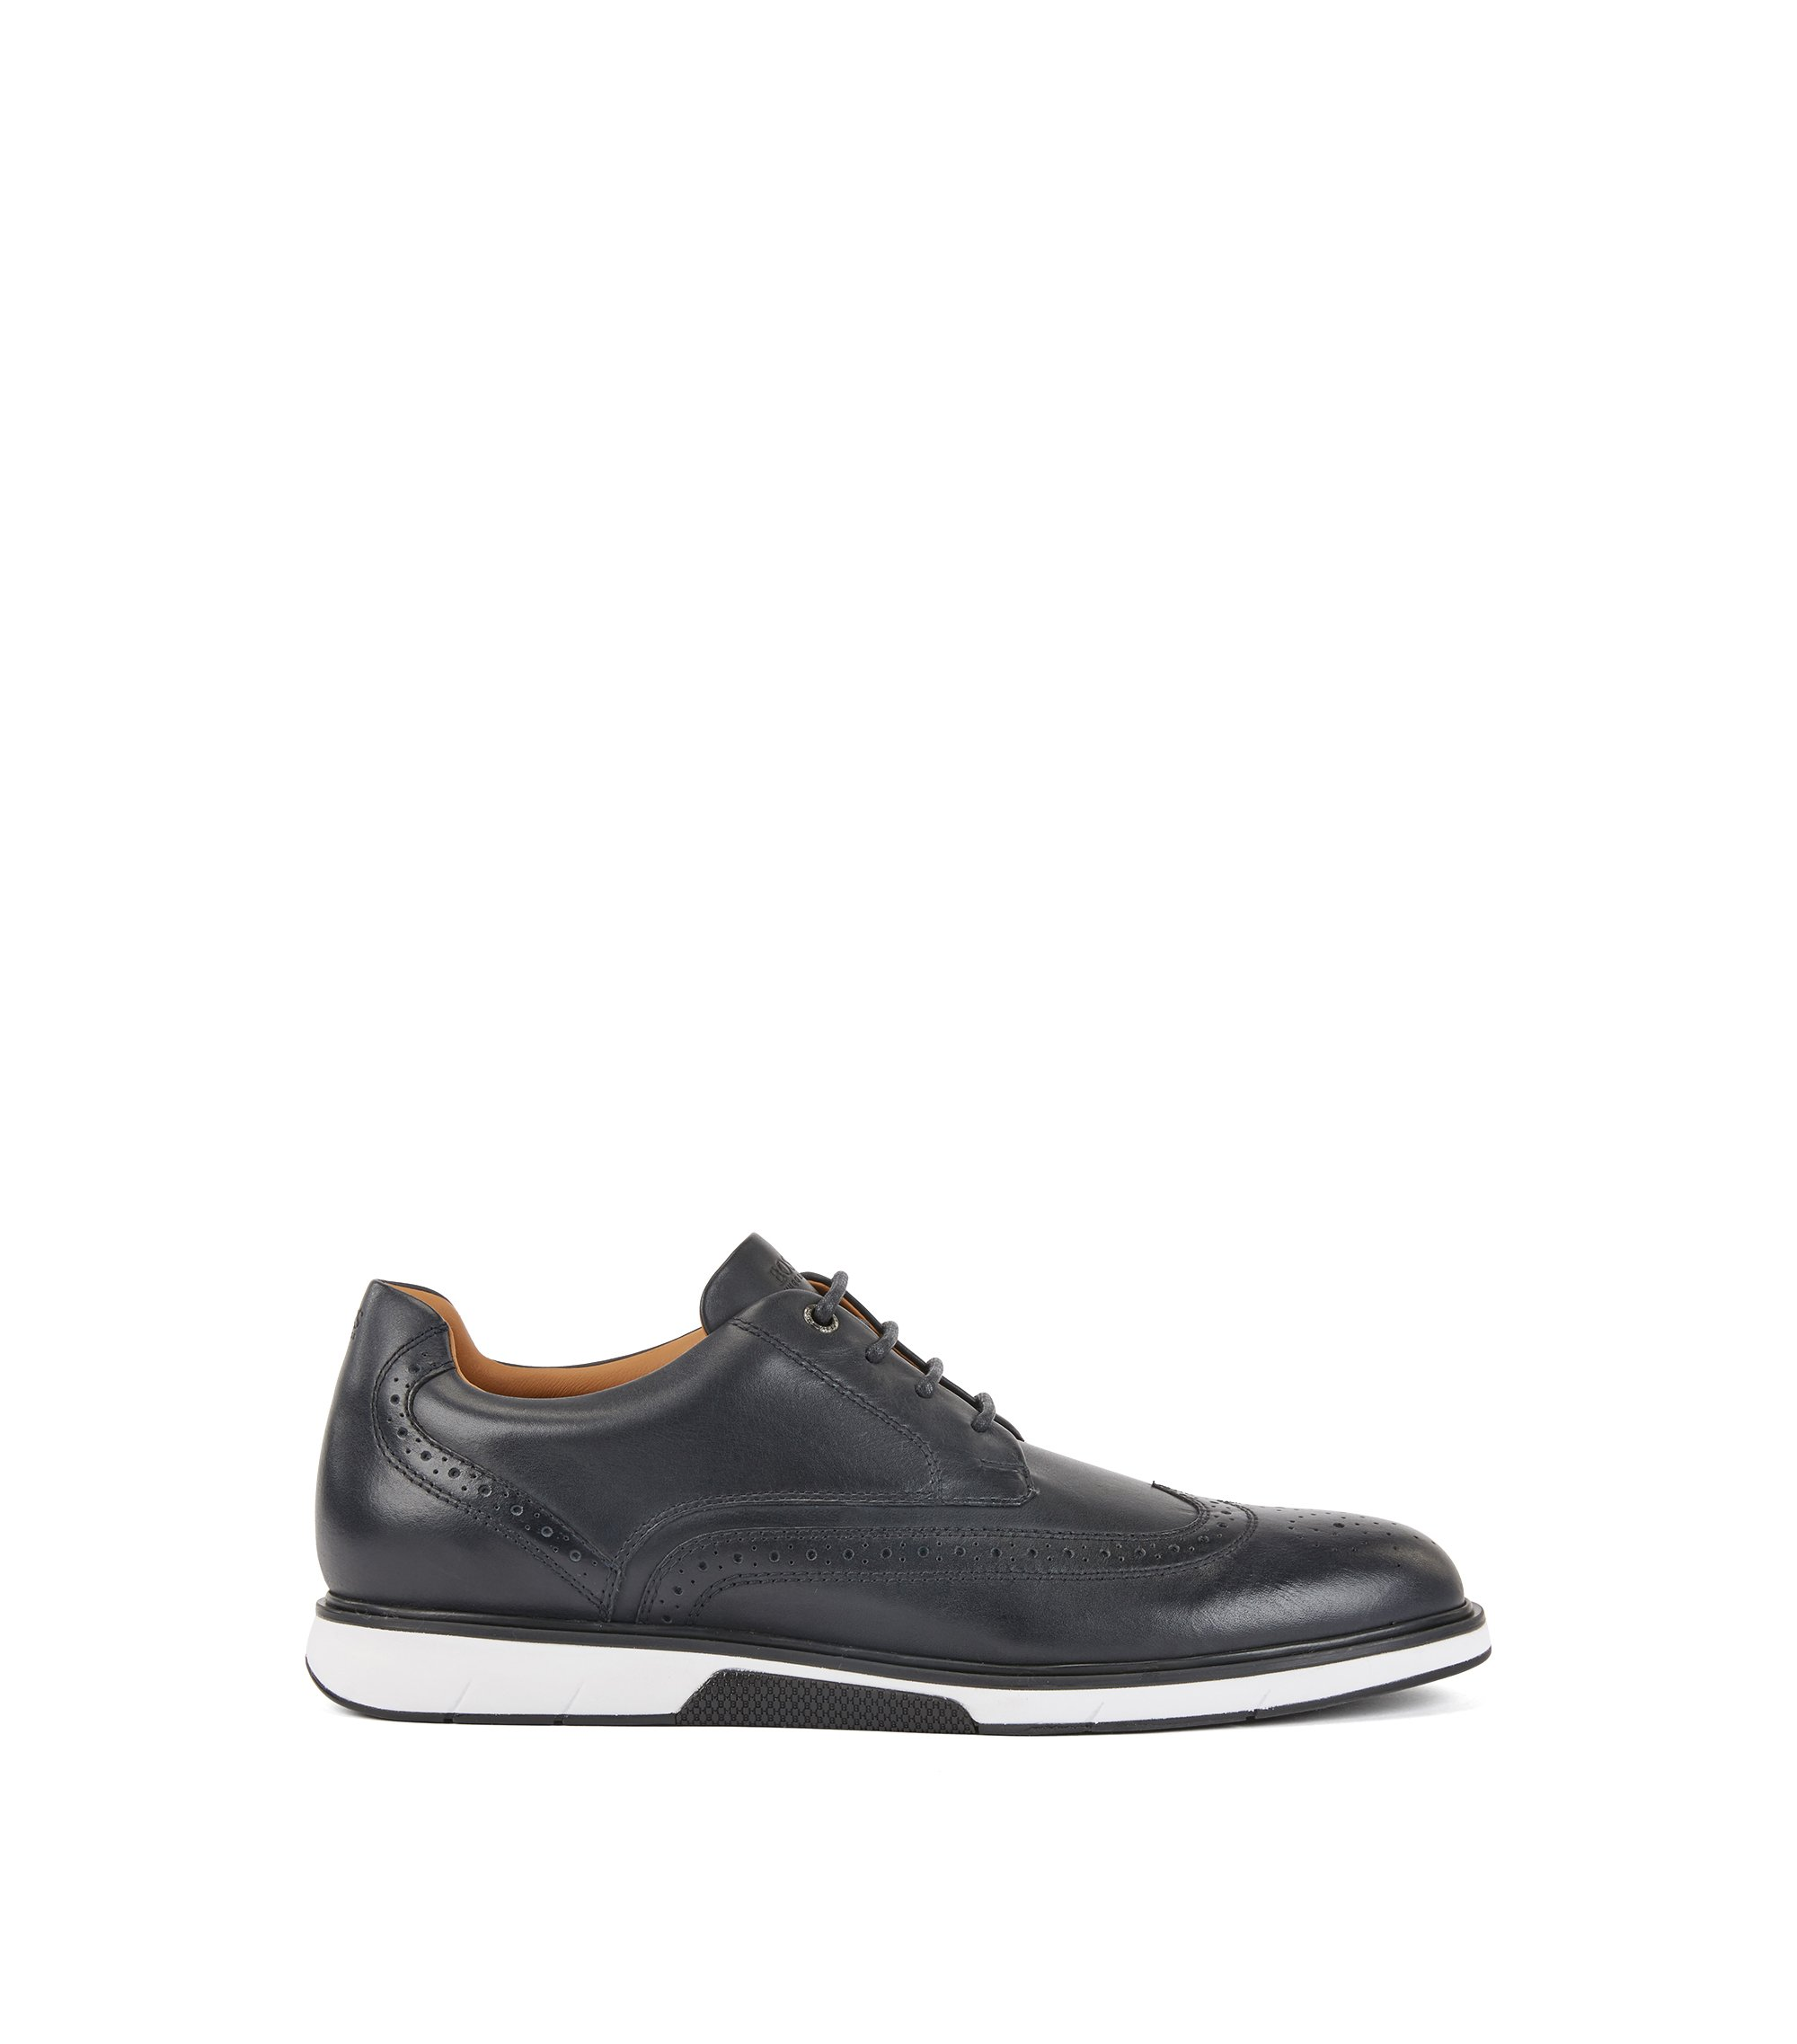 Leather Derby shoes with trainer-style sole, Dark Blue